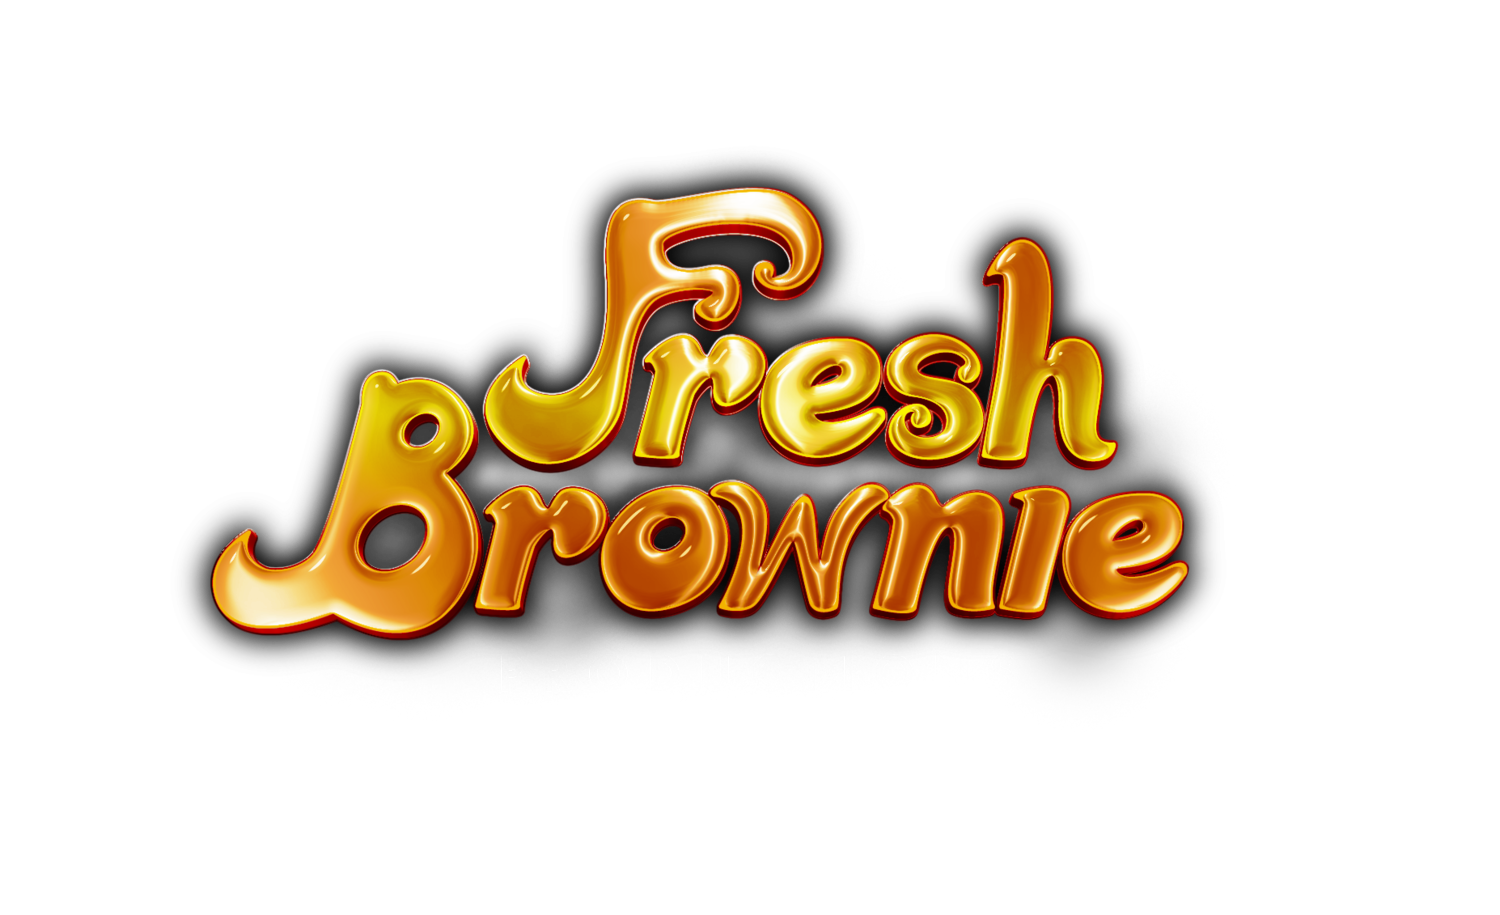 Fresh Brownie Productions